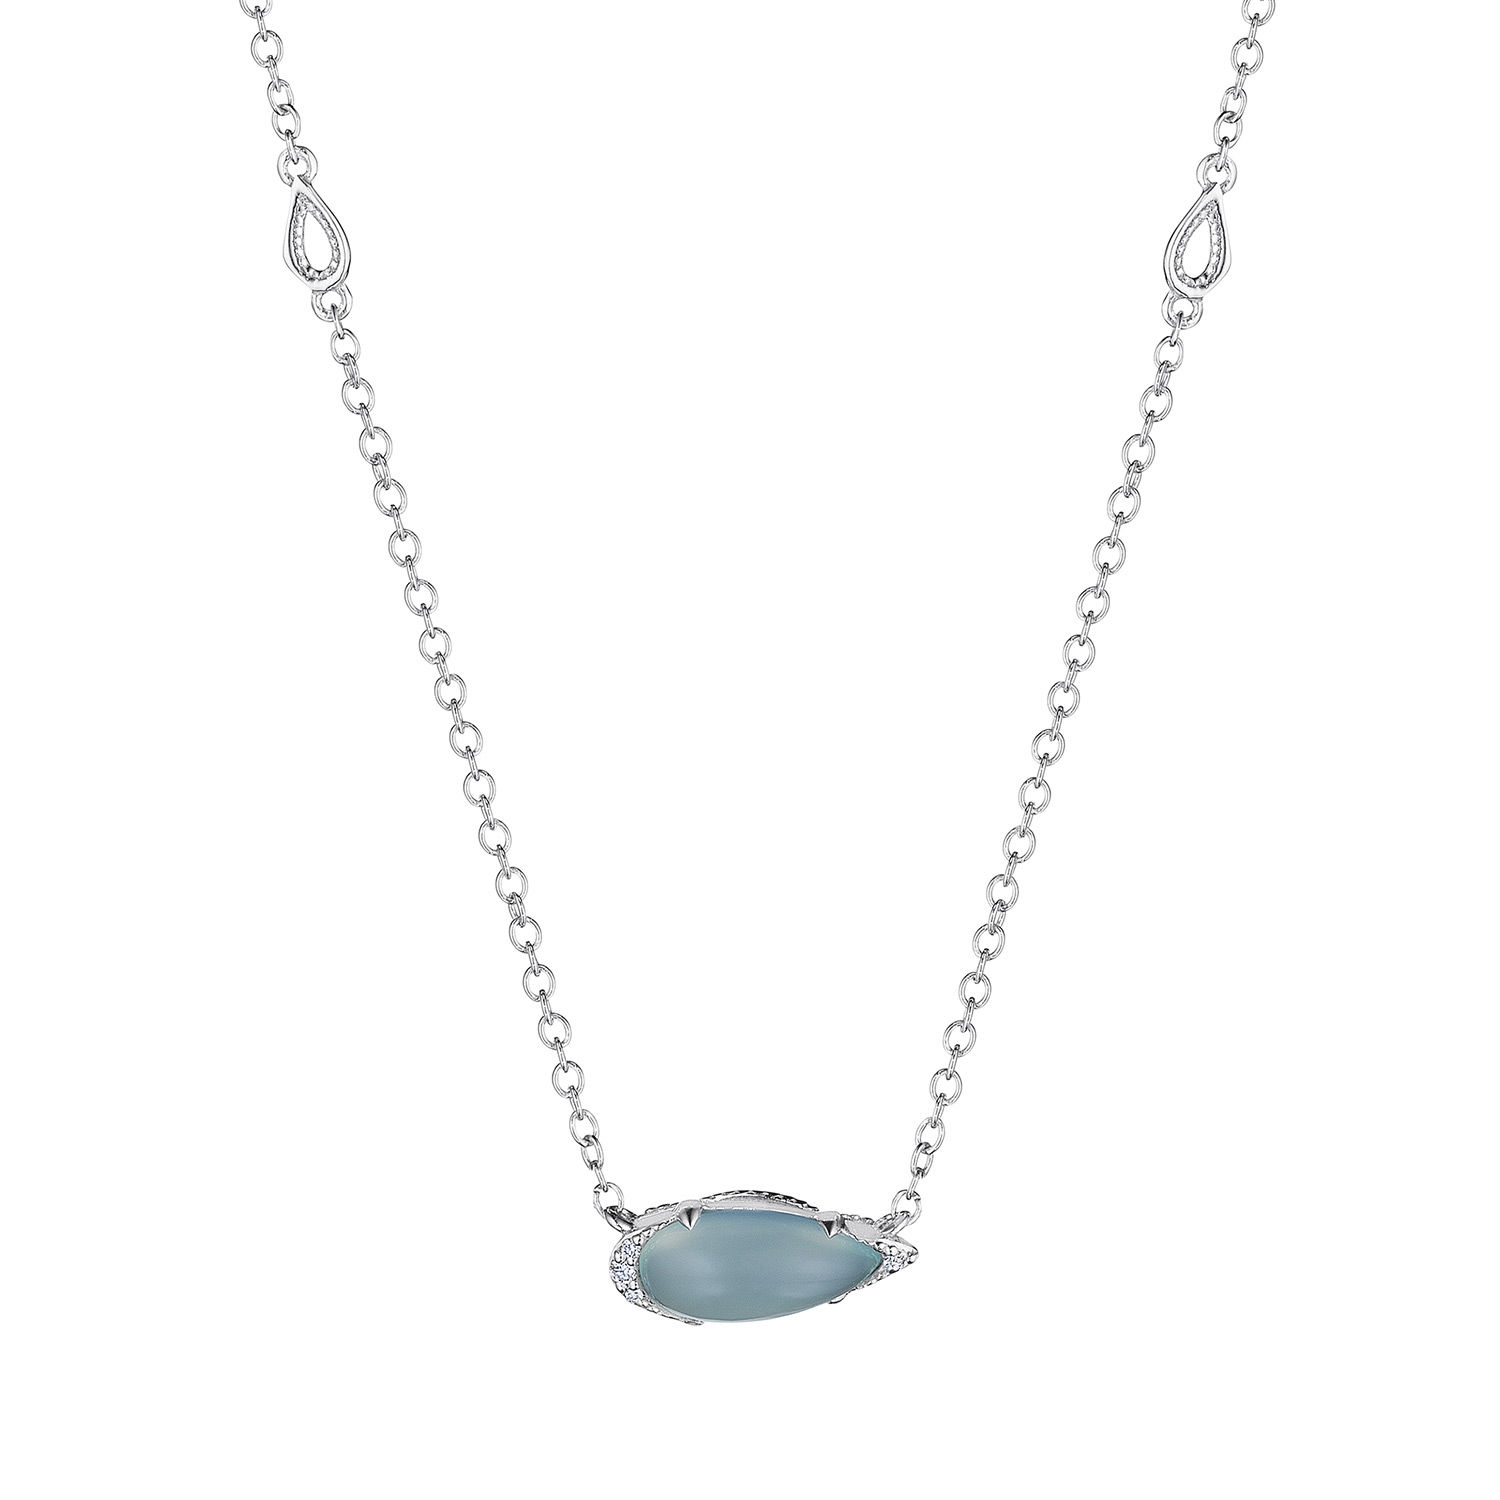 Tacori SN23538 Solitaire Pear-Shaped Gem Necklace with Green Chalcedony